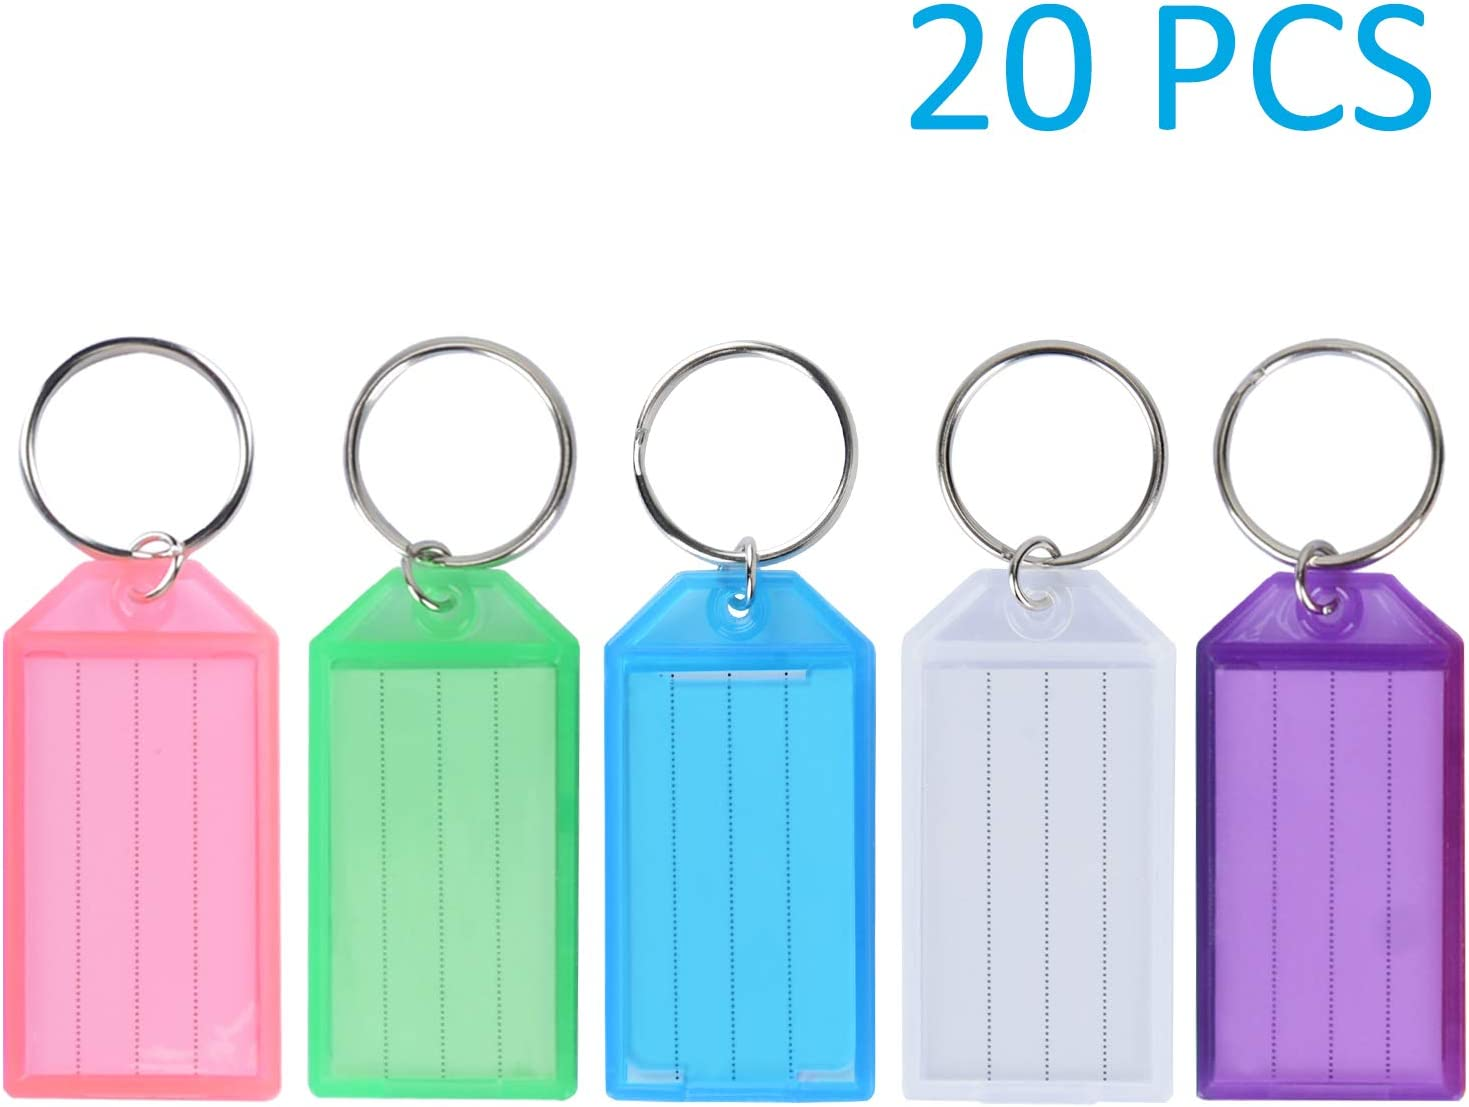 Vibit 20 Pack Tough Plastic Key Tags with Split Ring Label Window, 5 Colors